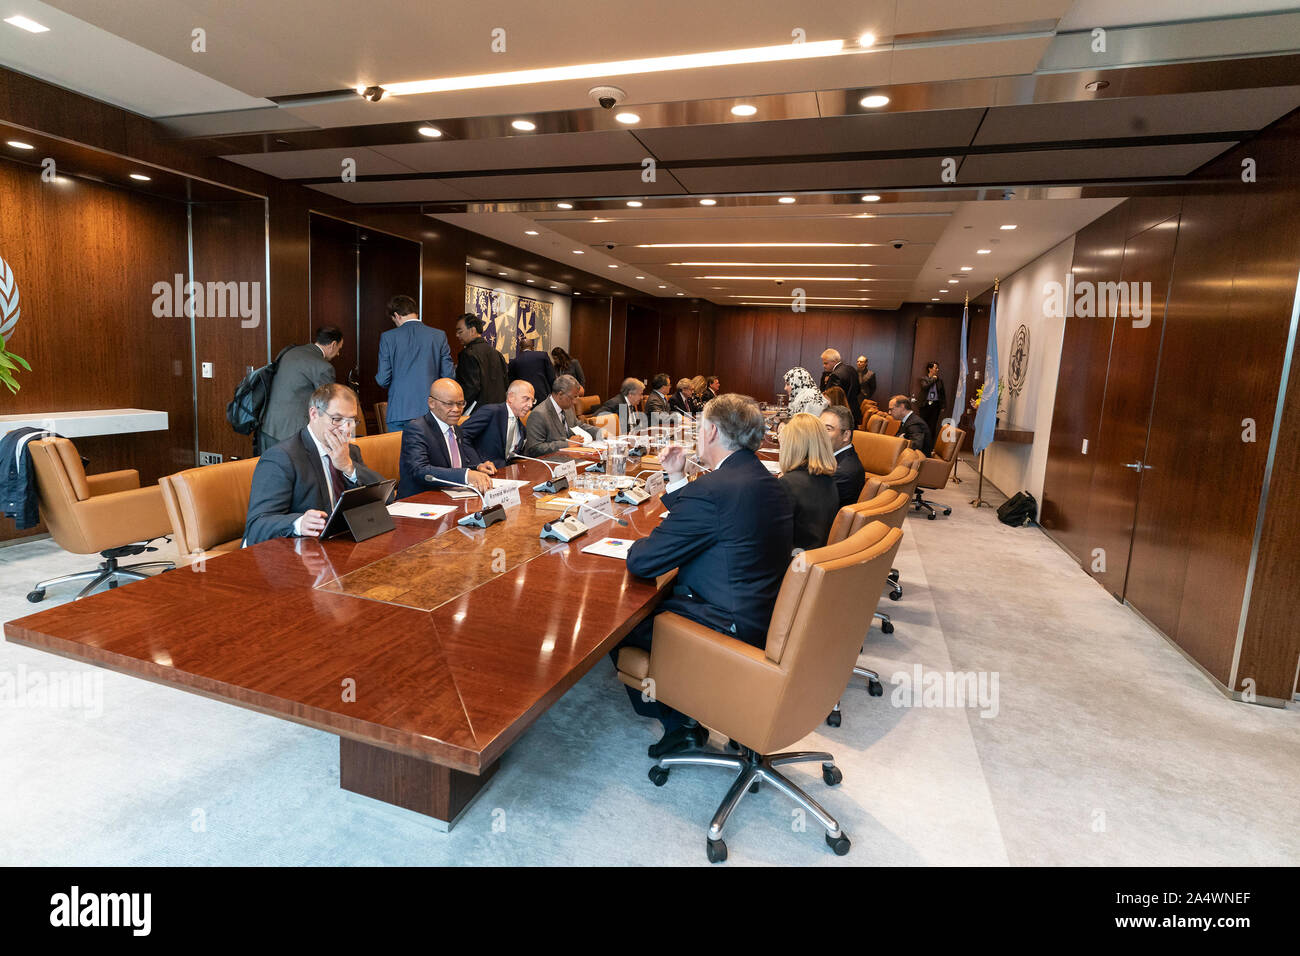 New York, United States. 16th Oct, 2019. UN Secretary-General Antonio Guterres hosts Inaugural Meeting of the Global Investors for Sustainable Development Alliance at UN Headquarters (Photo by Lev Radin/Pacific Press) Credit: Pacific Press Agency/Alamy Live News Stock Photo